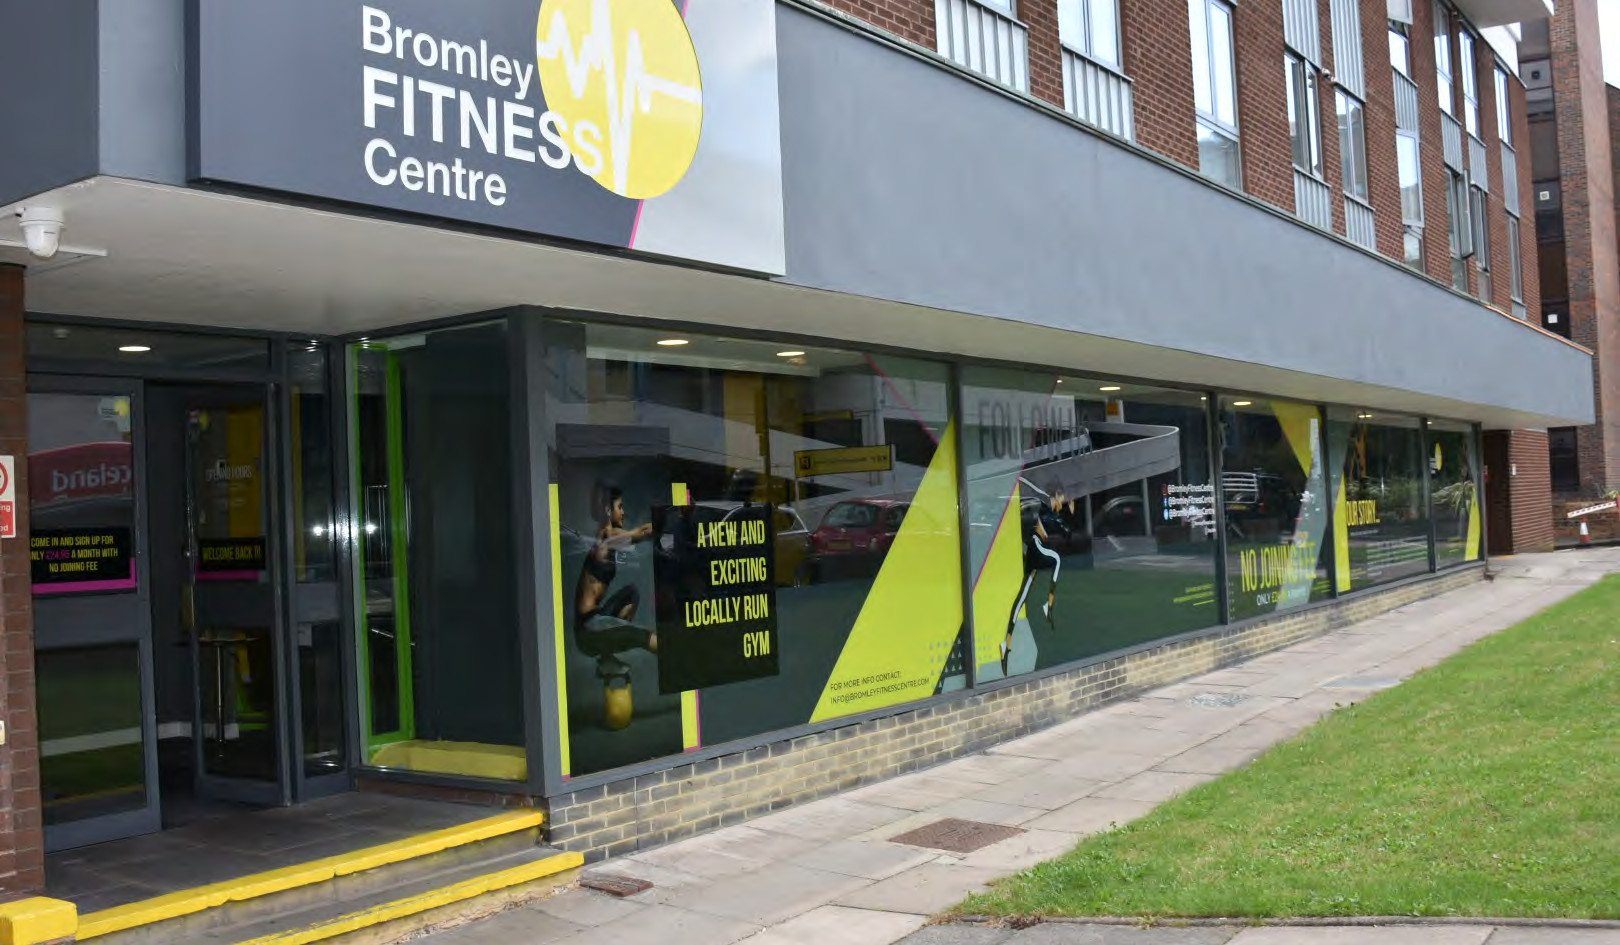 Bromley Fitness Centre